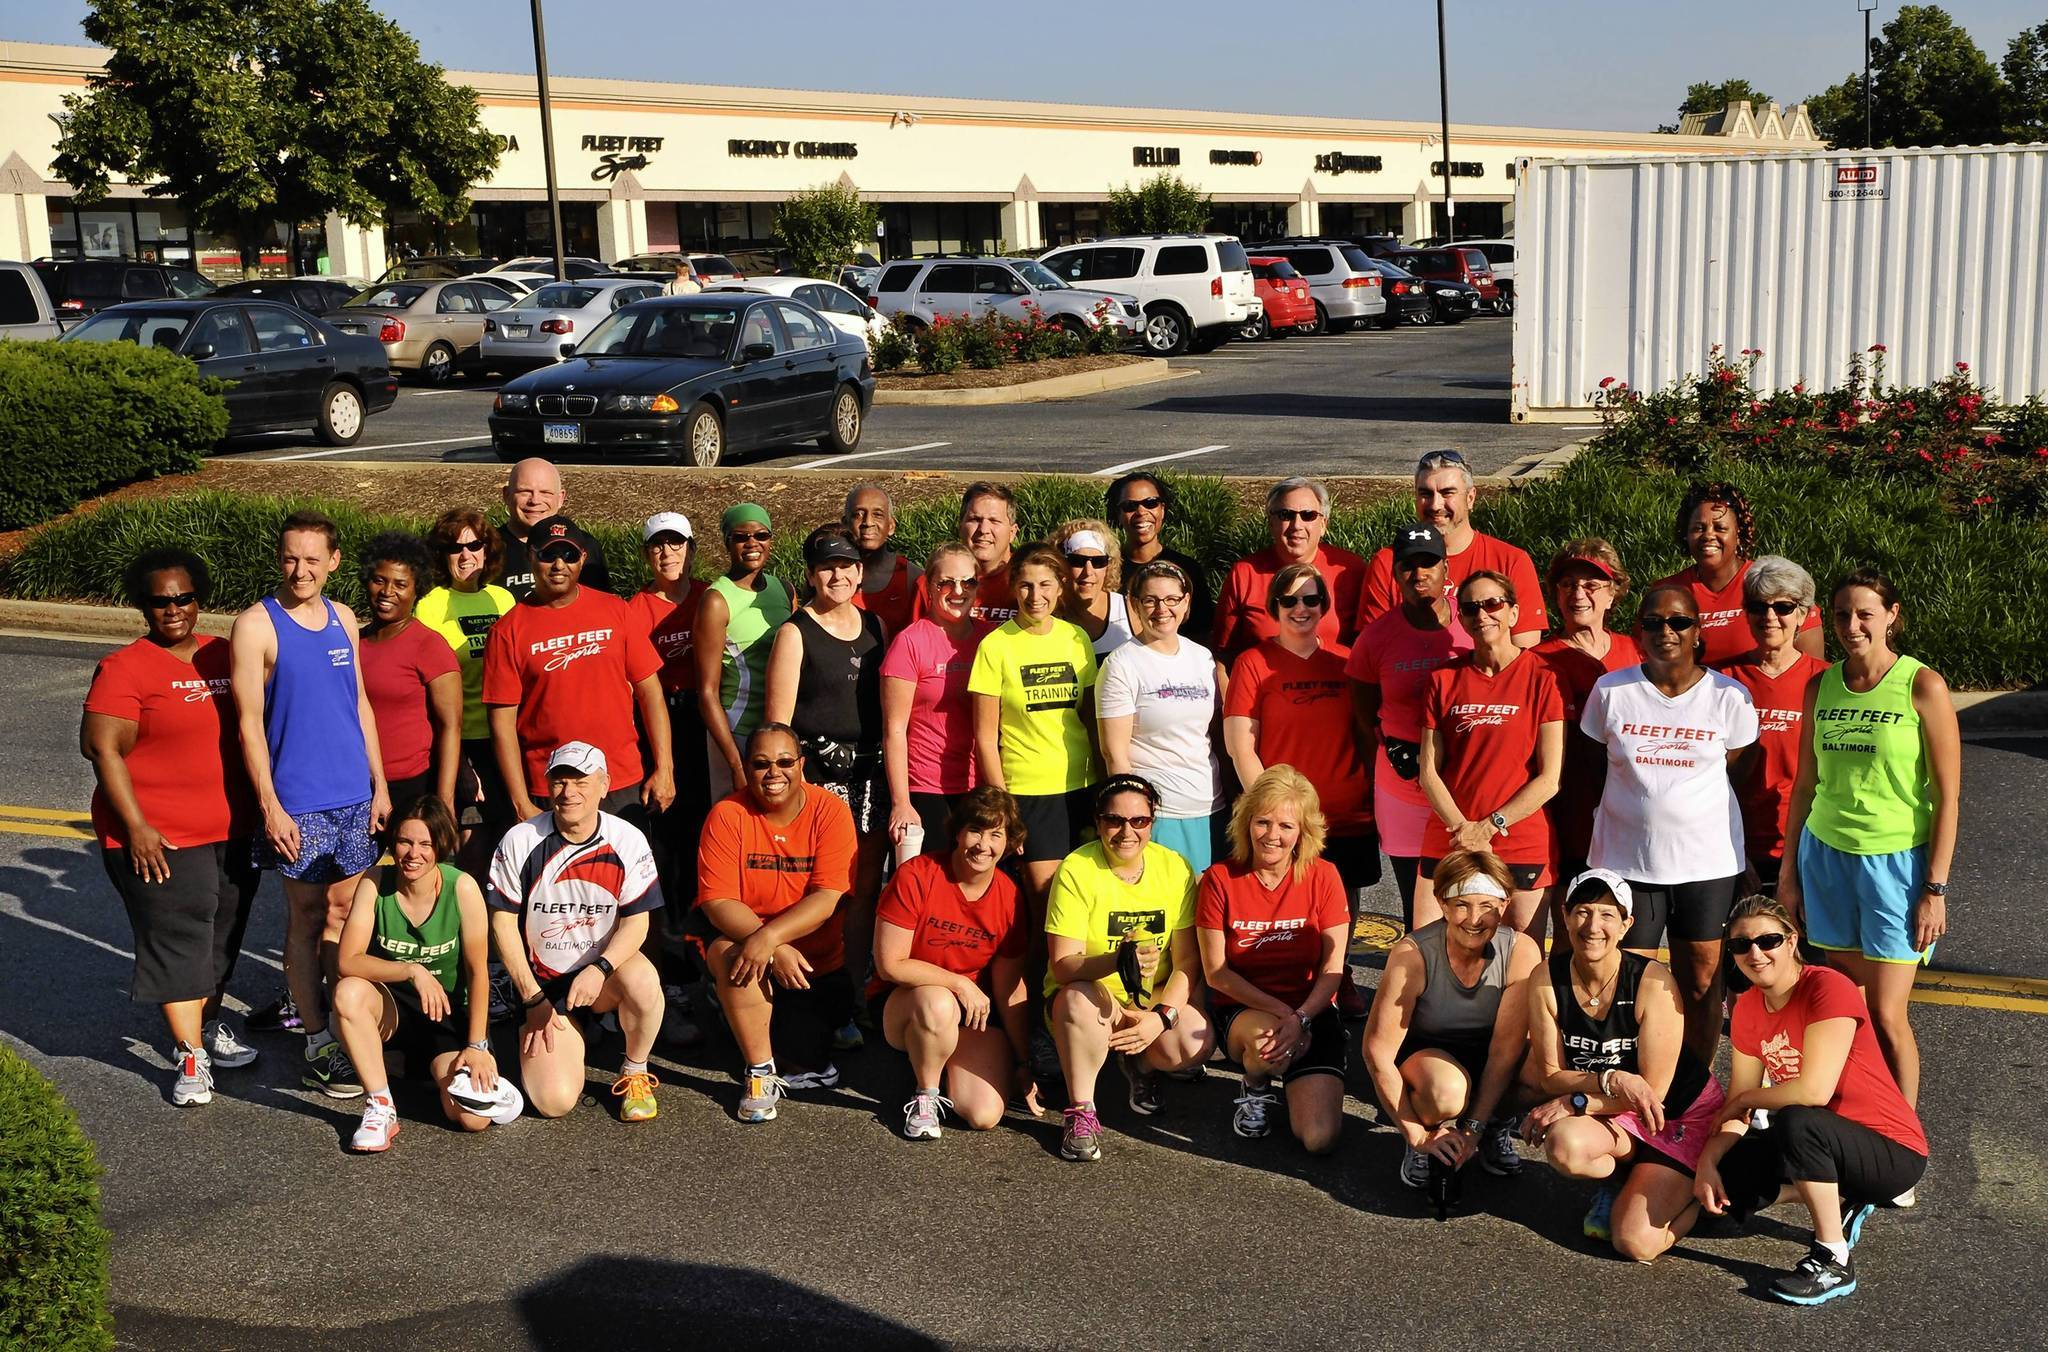 Runners meet at Fleet Feet Sports Baltimore on Tuesday and Thursday evenings. The group is organzied by store owners Bobby and Karen Levein (second from left, front row, and second from right, front row, respectively).